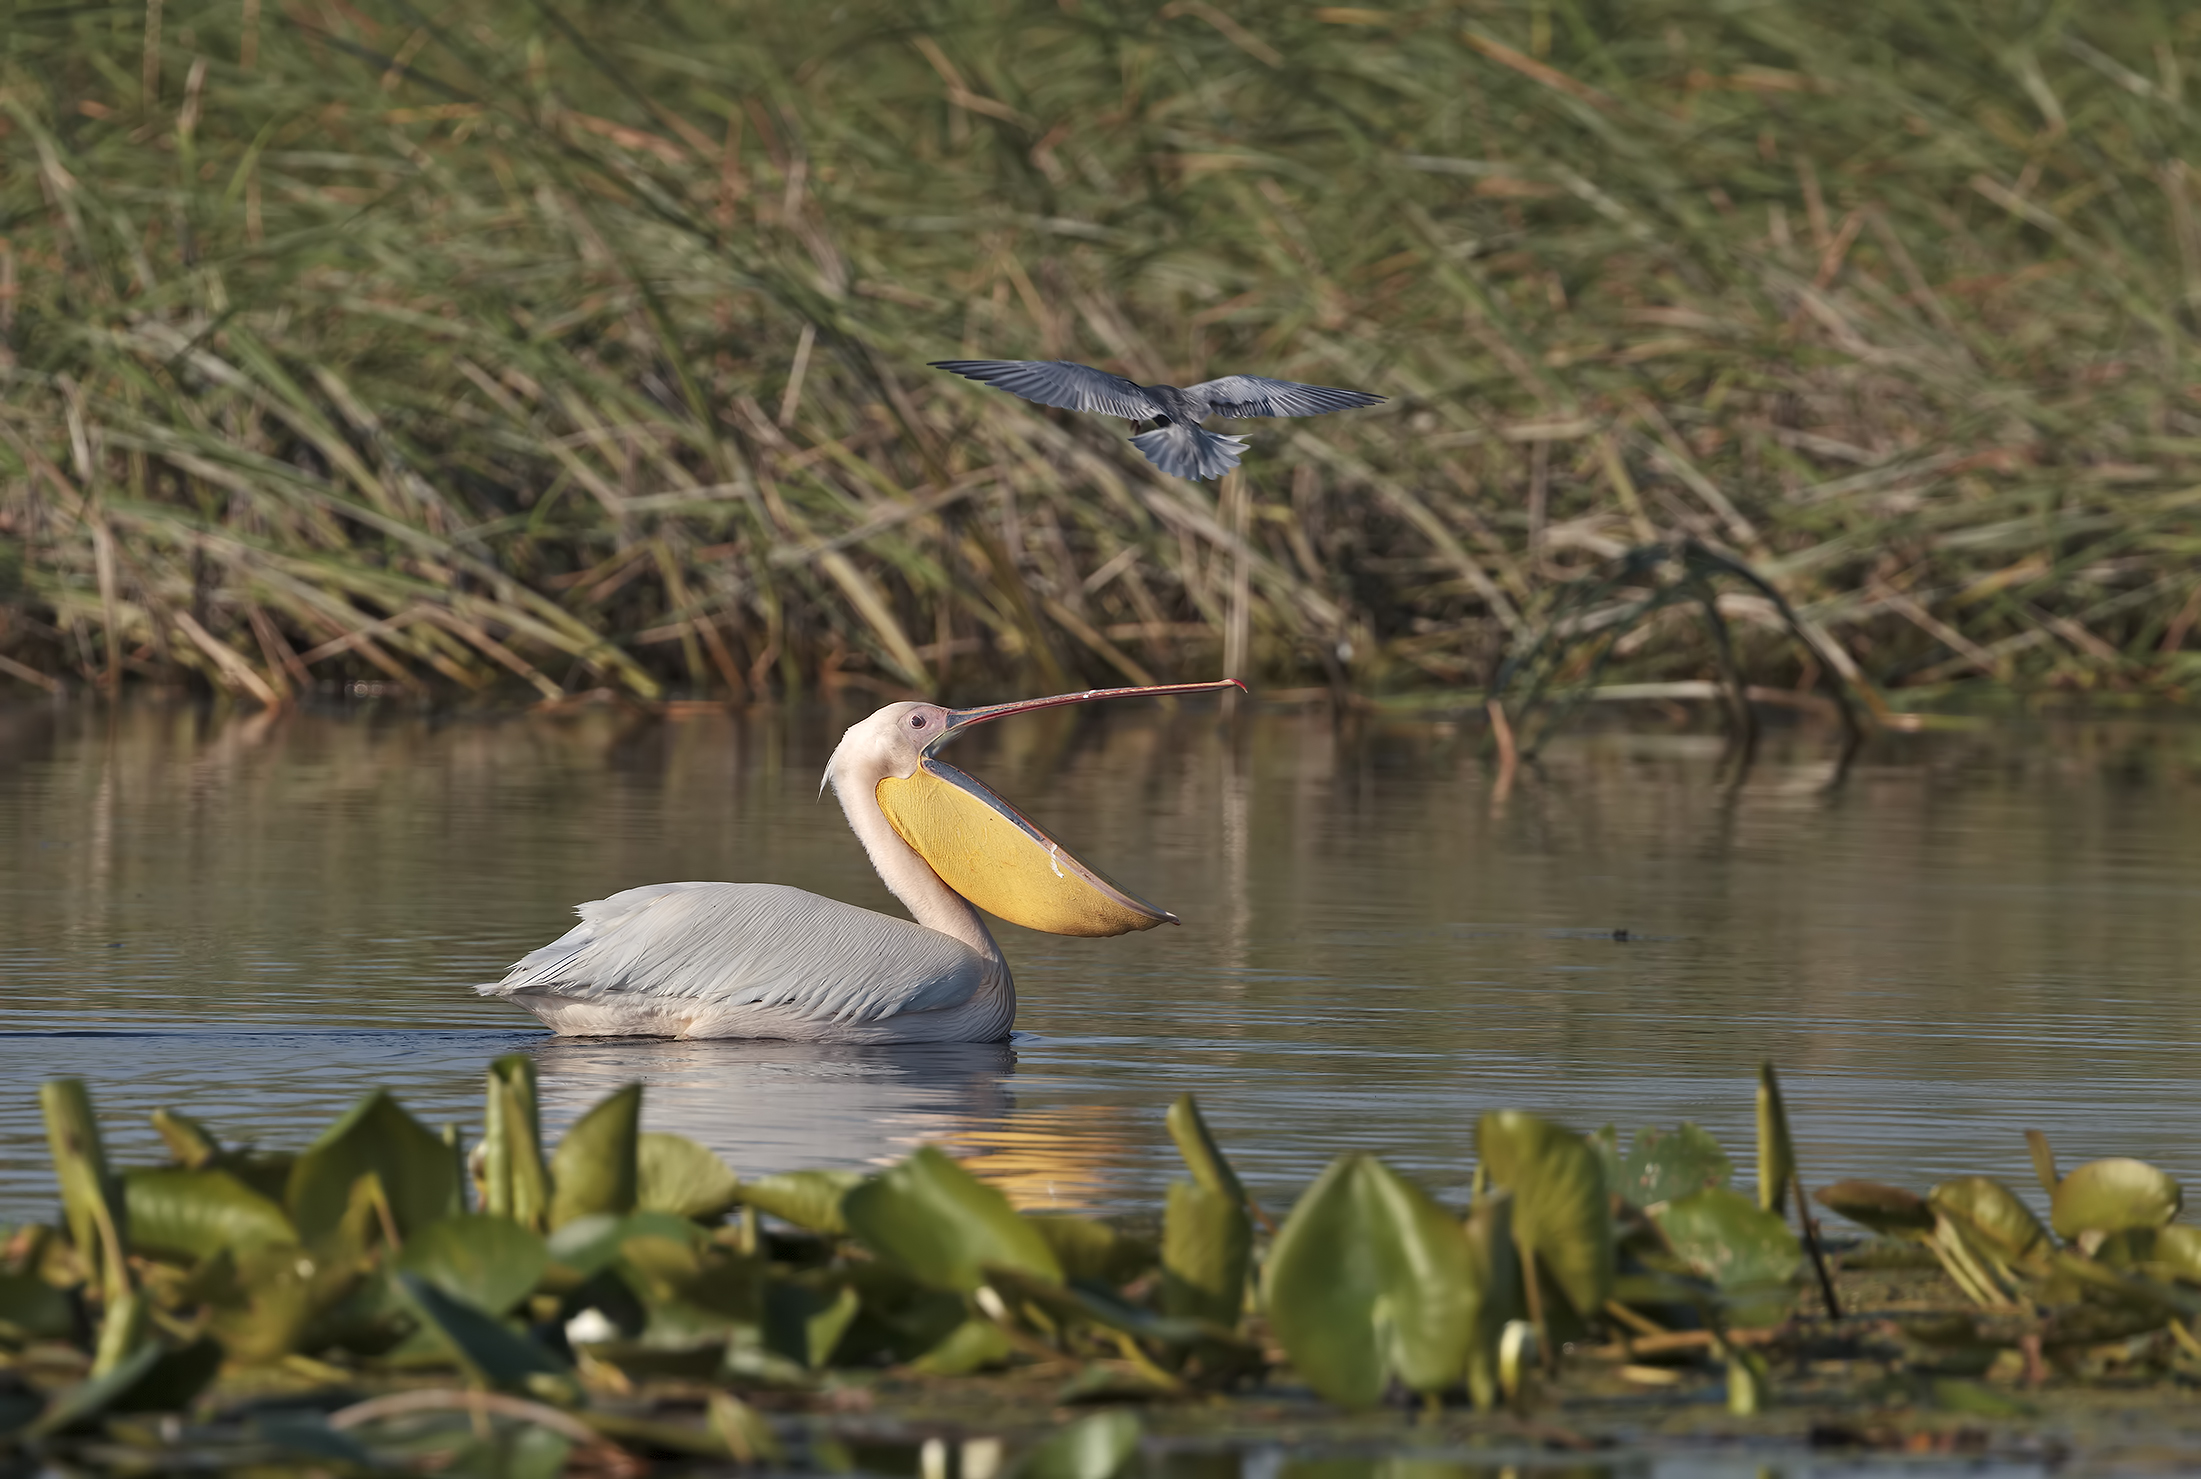 Skirmishes between pelican and whiskered tern...